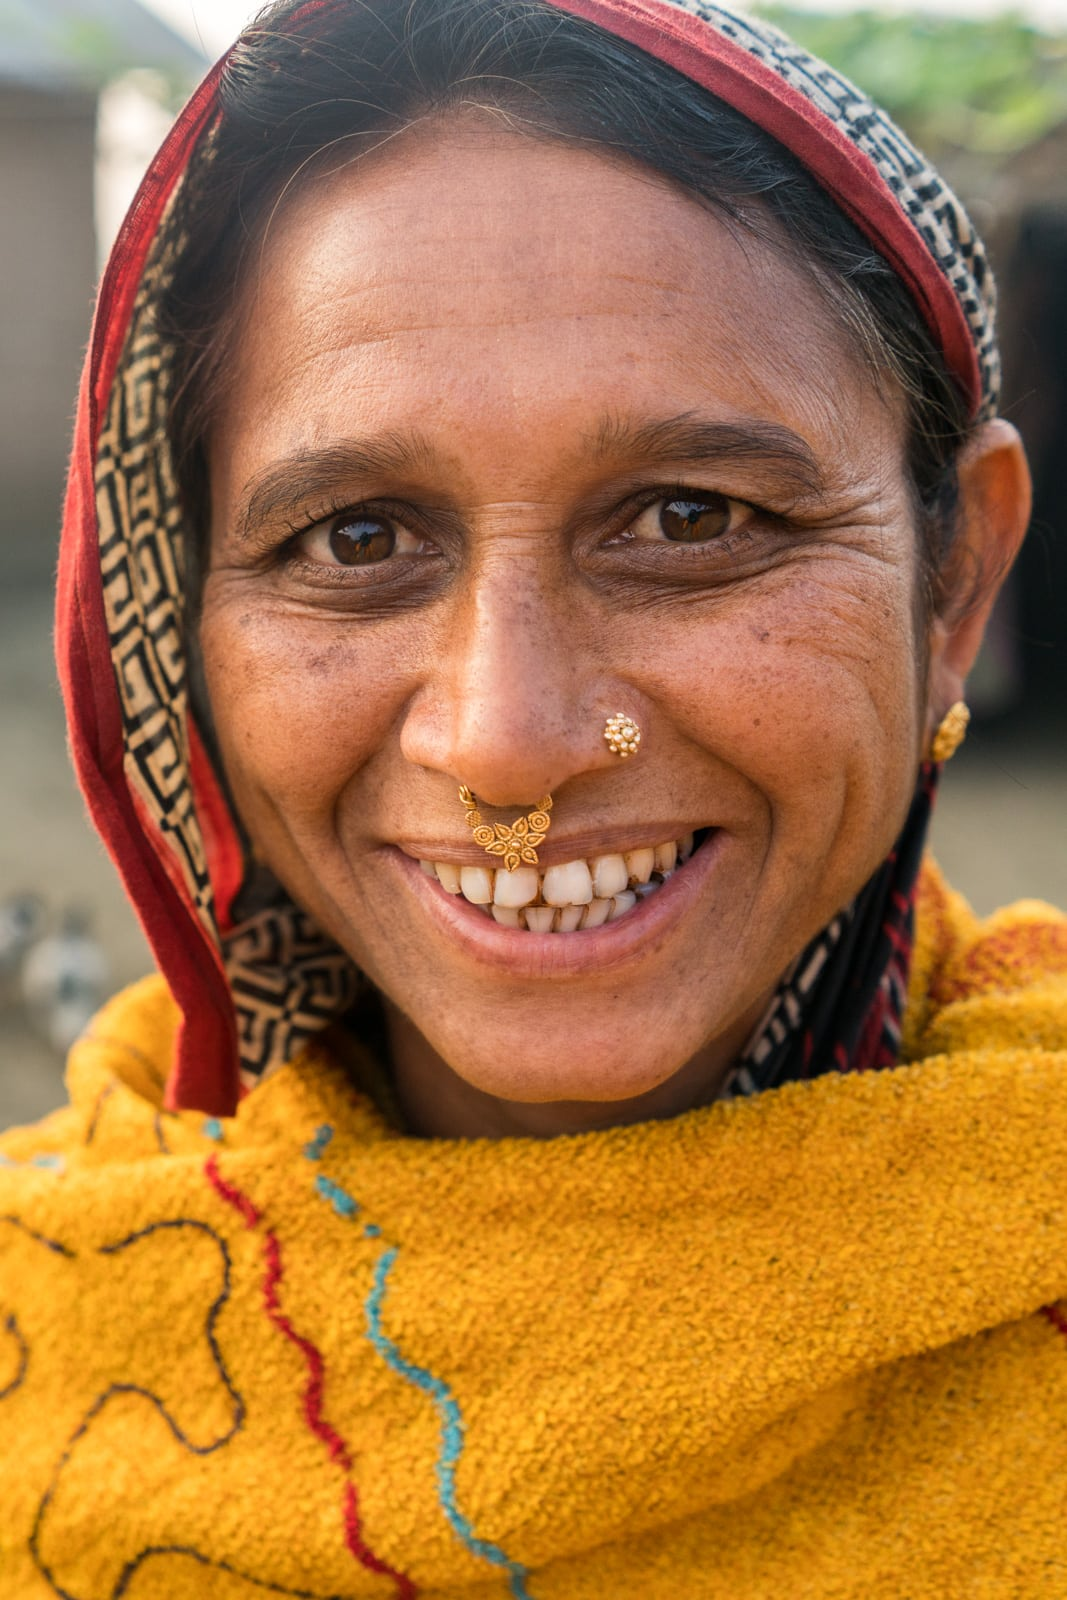 A smiling Bangladeshi woman in yellow headscarf in Assam, India.